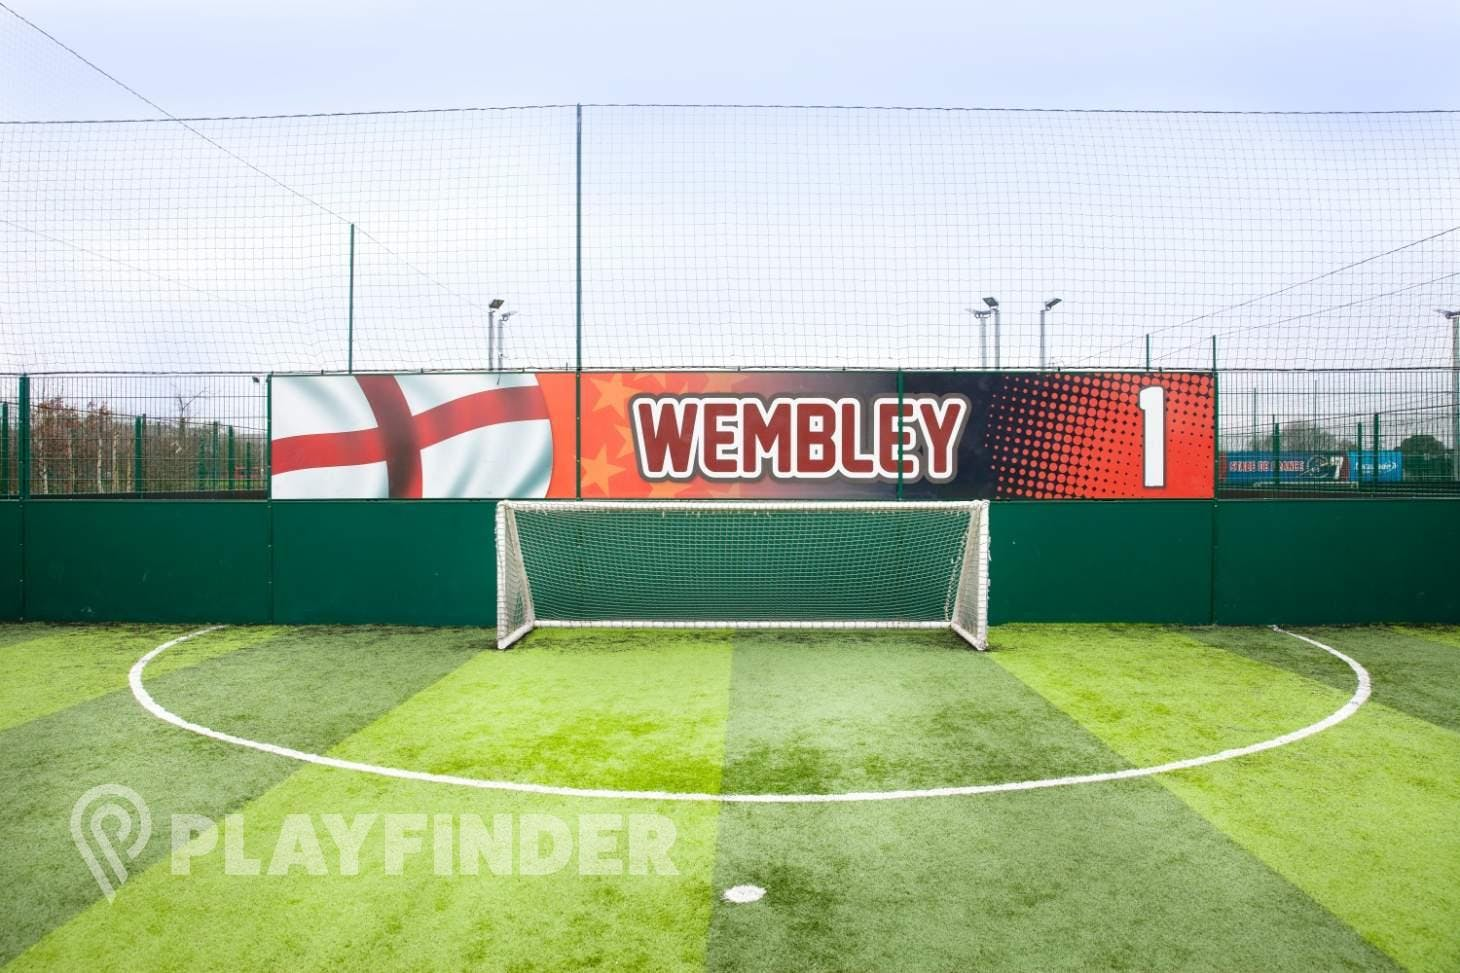 Goals Liverpool North 5 a side | 3G Astroturf football pitch